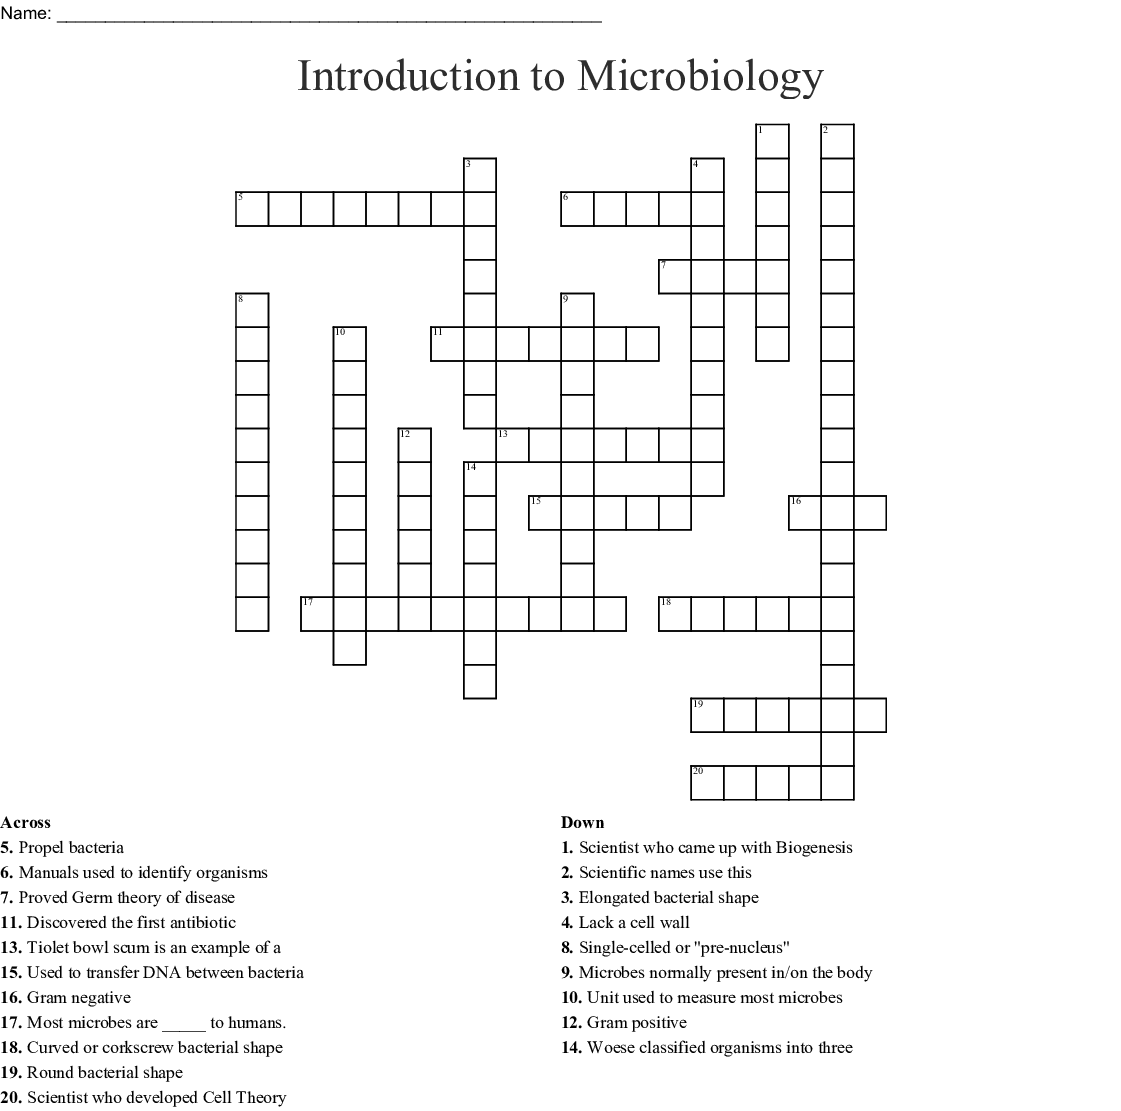 Introduction And Microscope Crossword Puzzle